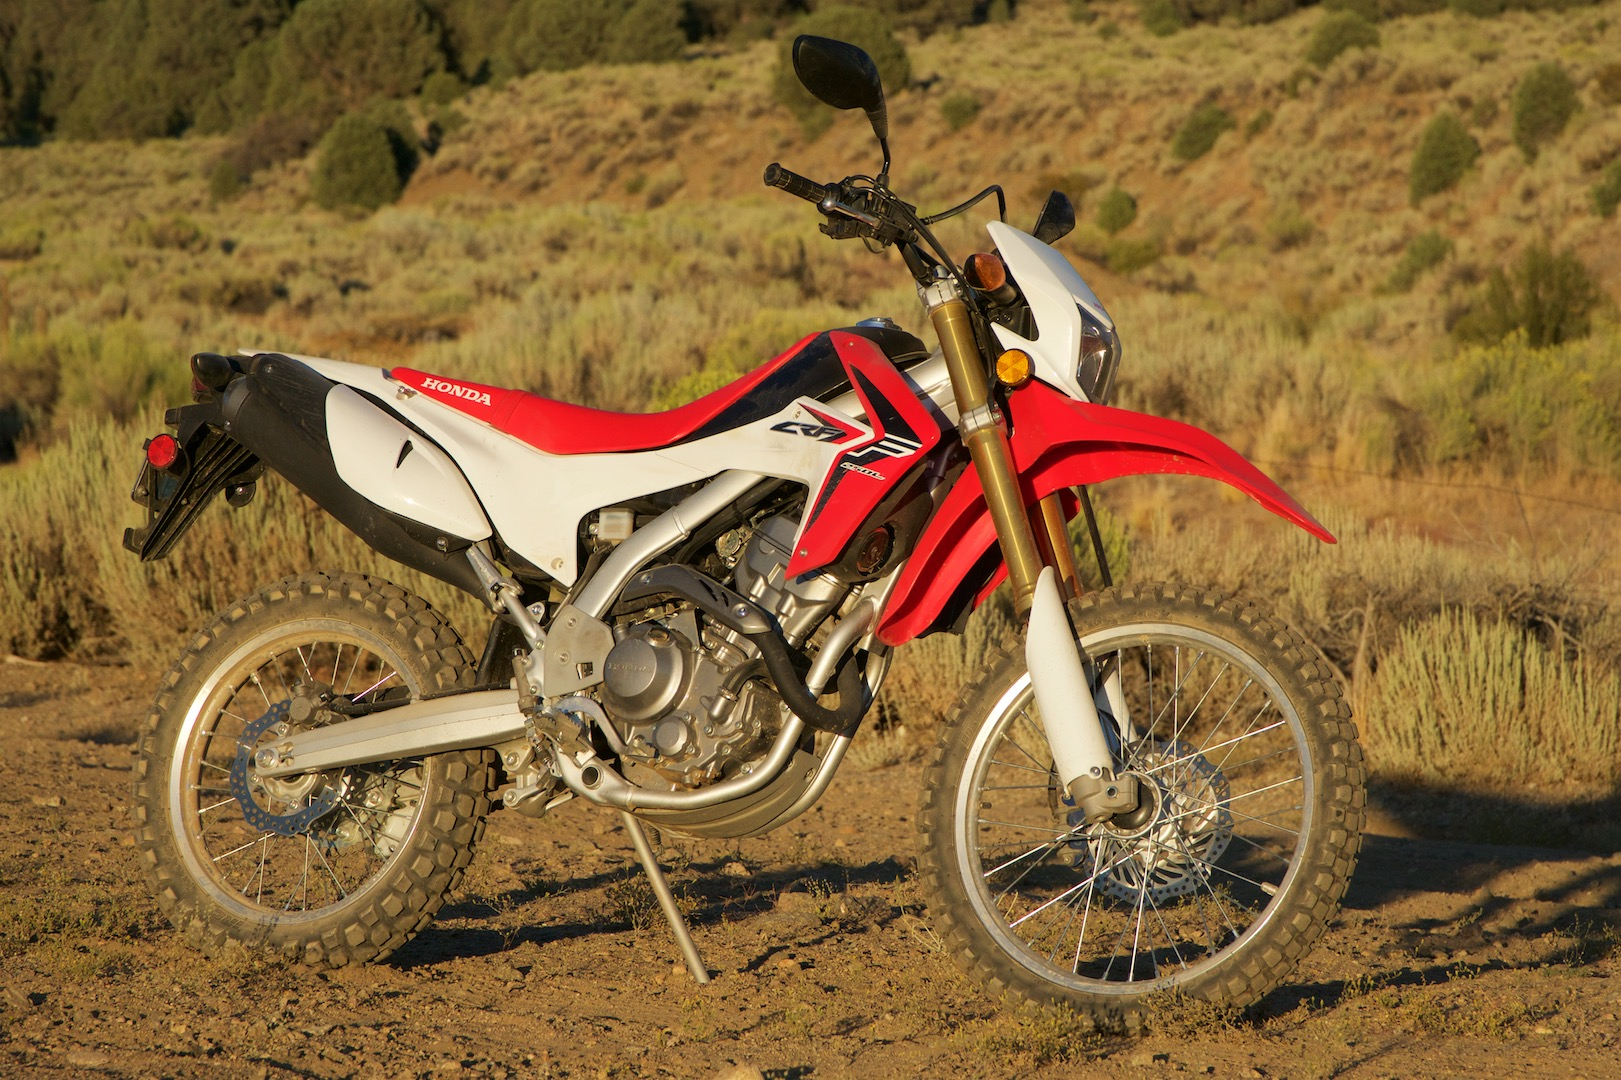 2016 honda crf250l review dual sport on and off road test. Black Bedroom Furniture Sets. Home Design Ideas